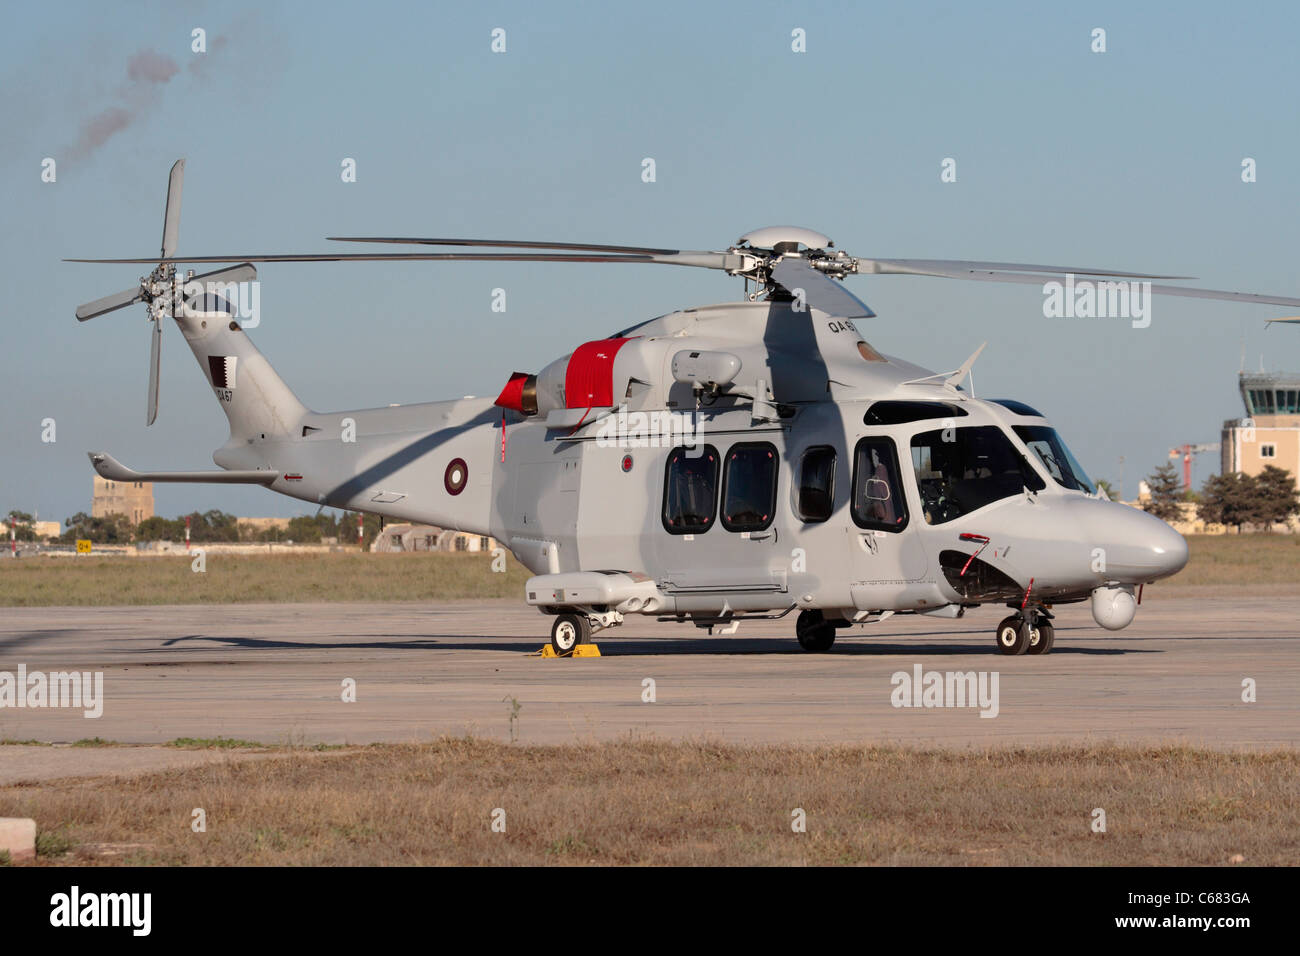 AgustaWestland AW139 helicopter of the Qatar Emiri Air Force - Stock Image